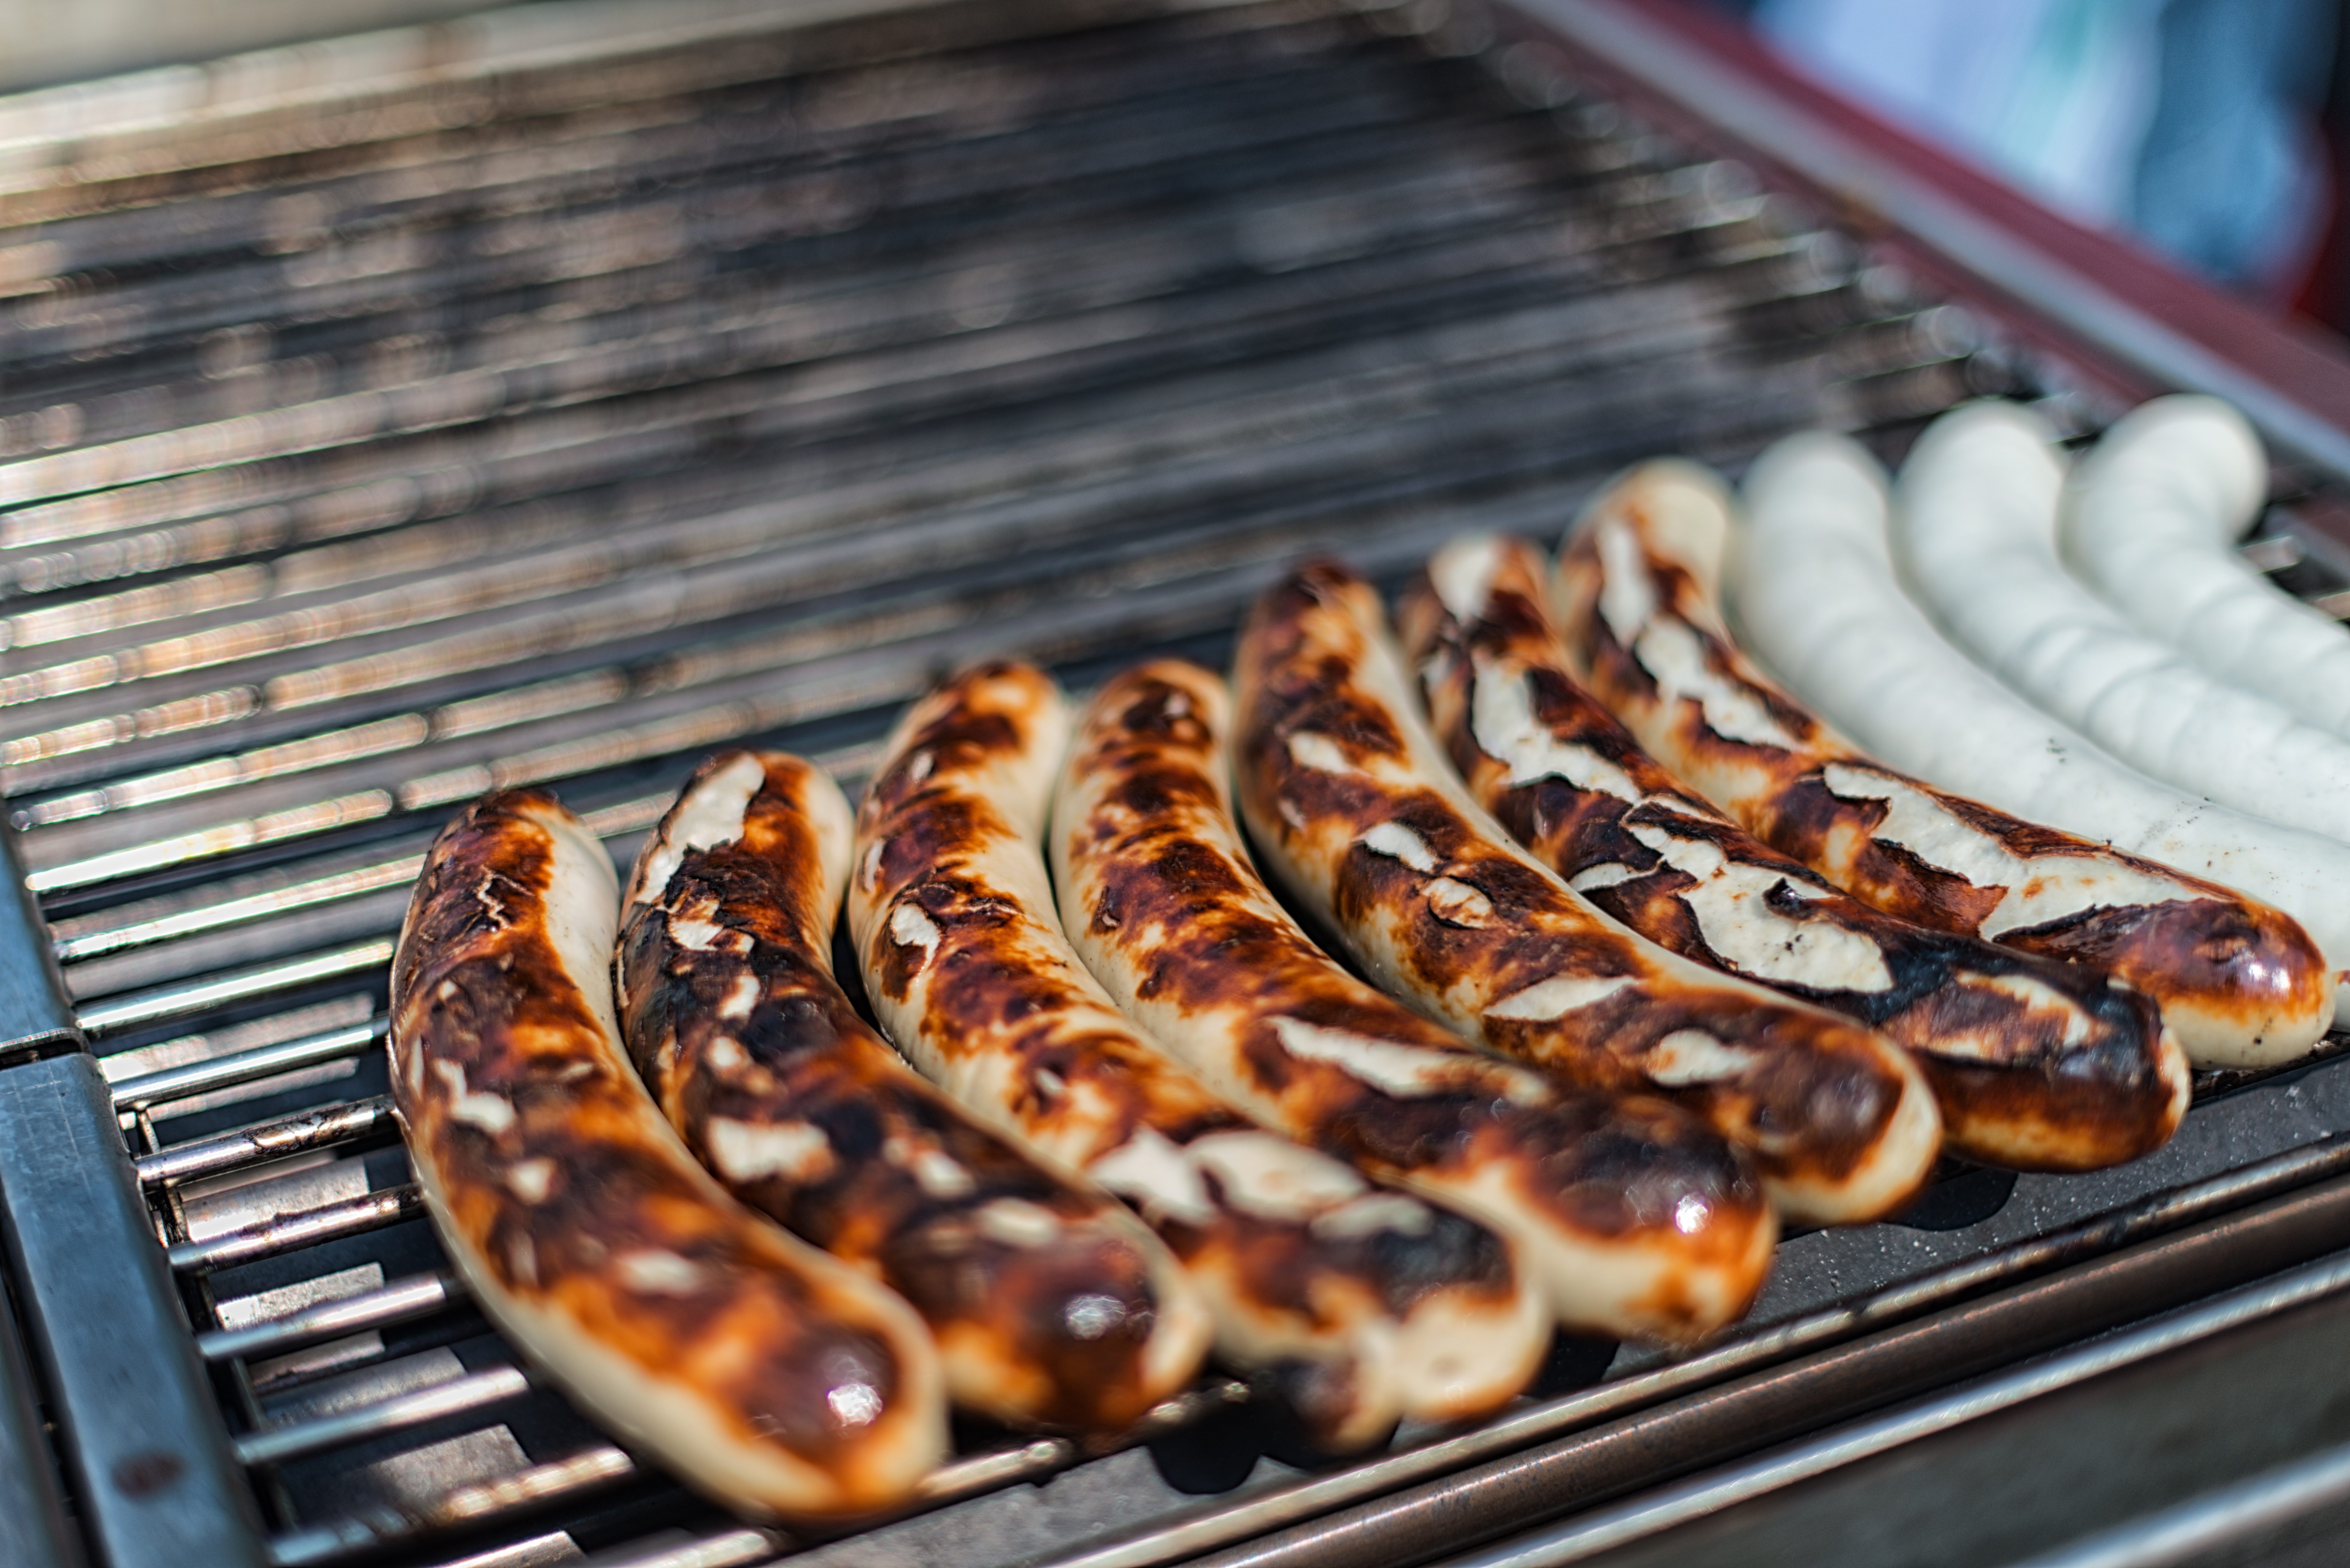 Typical St. Galler Bratwurst on grill